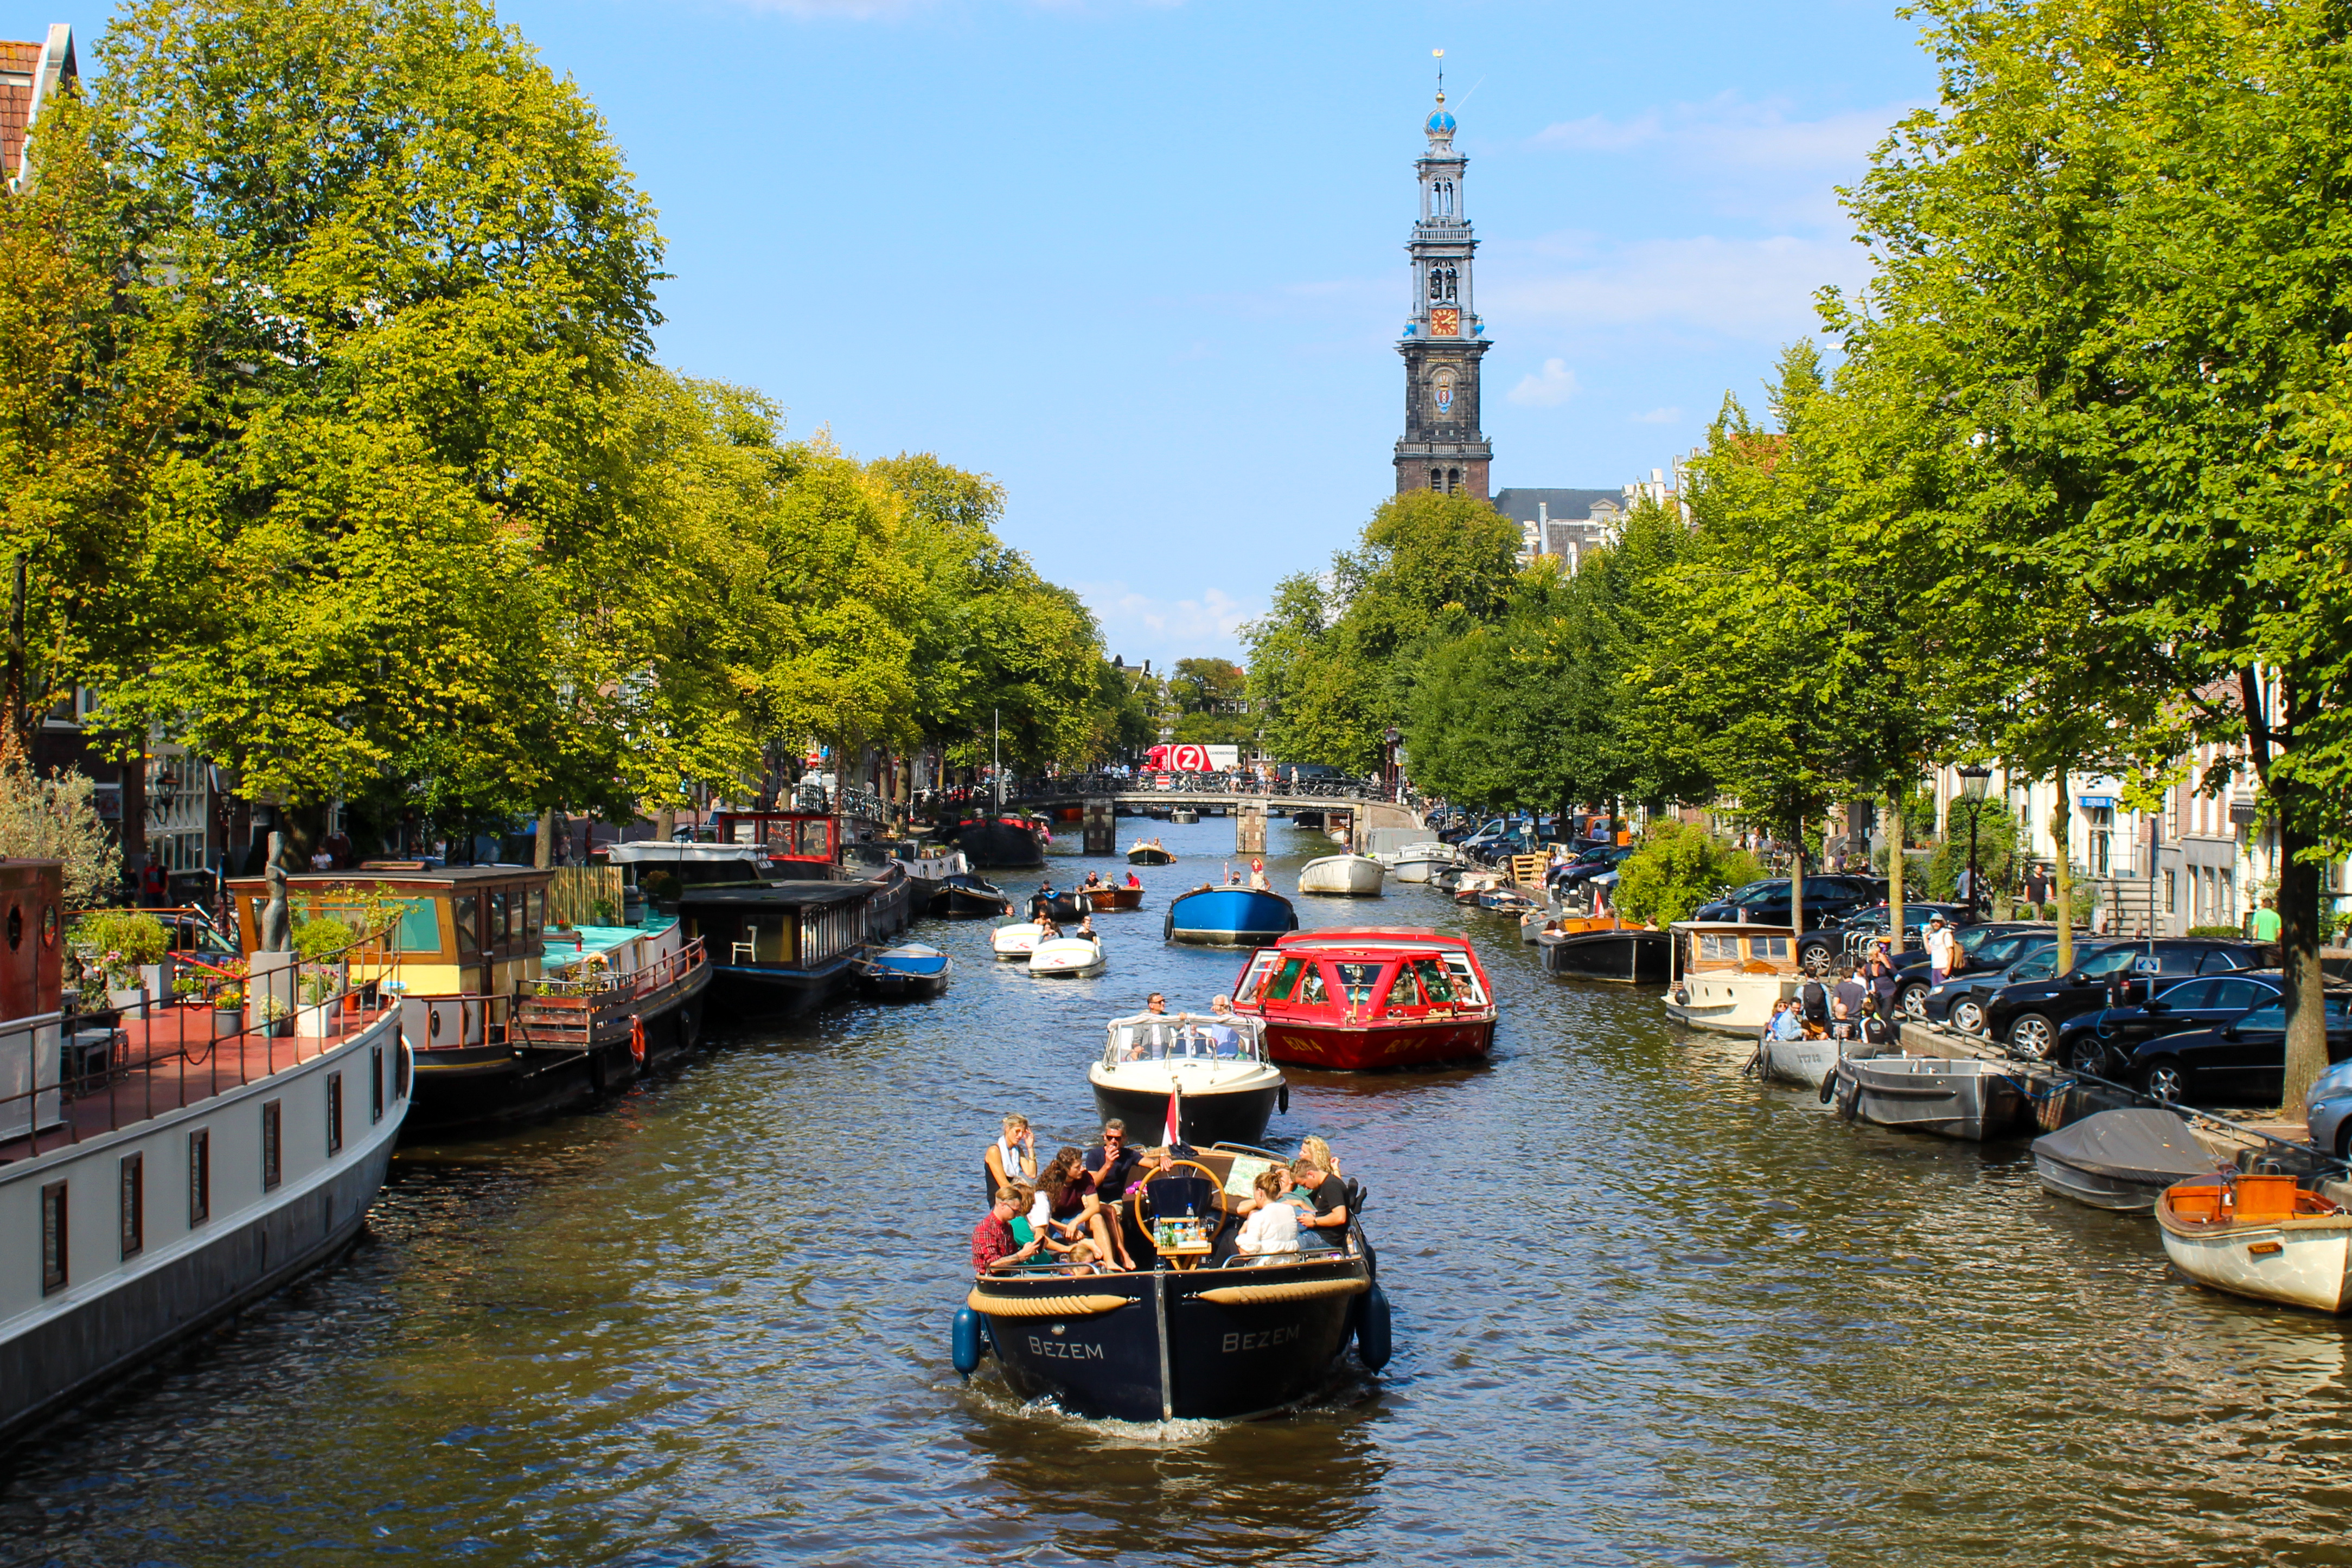 Canals of Amsterdam - Wikipedia